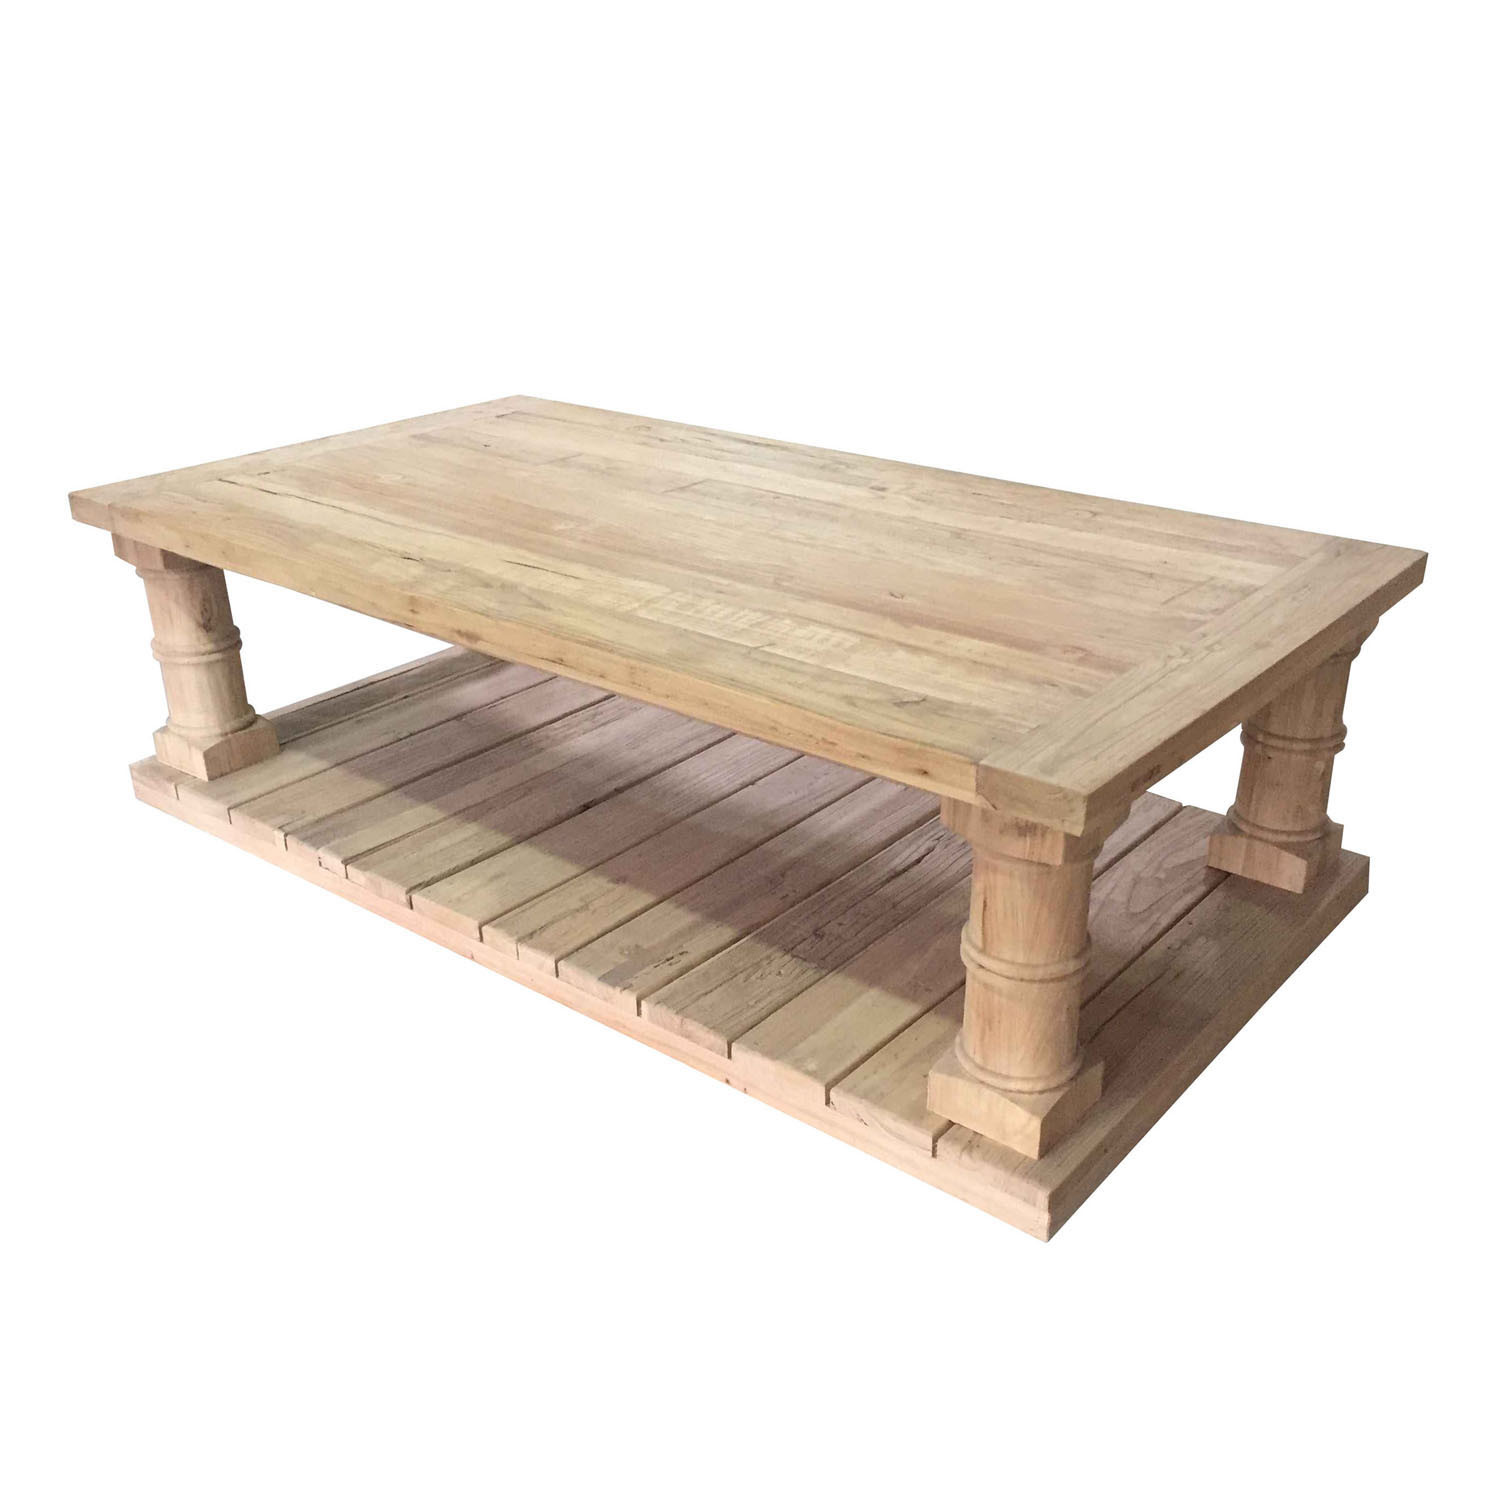 China Classic Solid Surface Large Elm Wooden Coffee Table Design China Coffee Table Wood Wooden Coffee Table Design